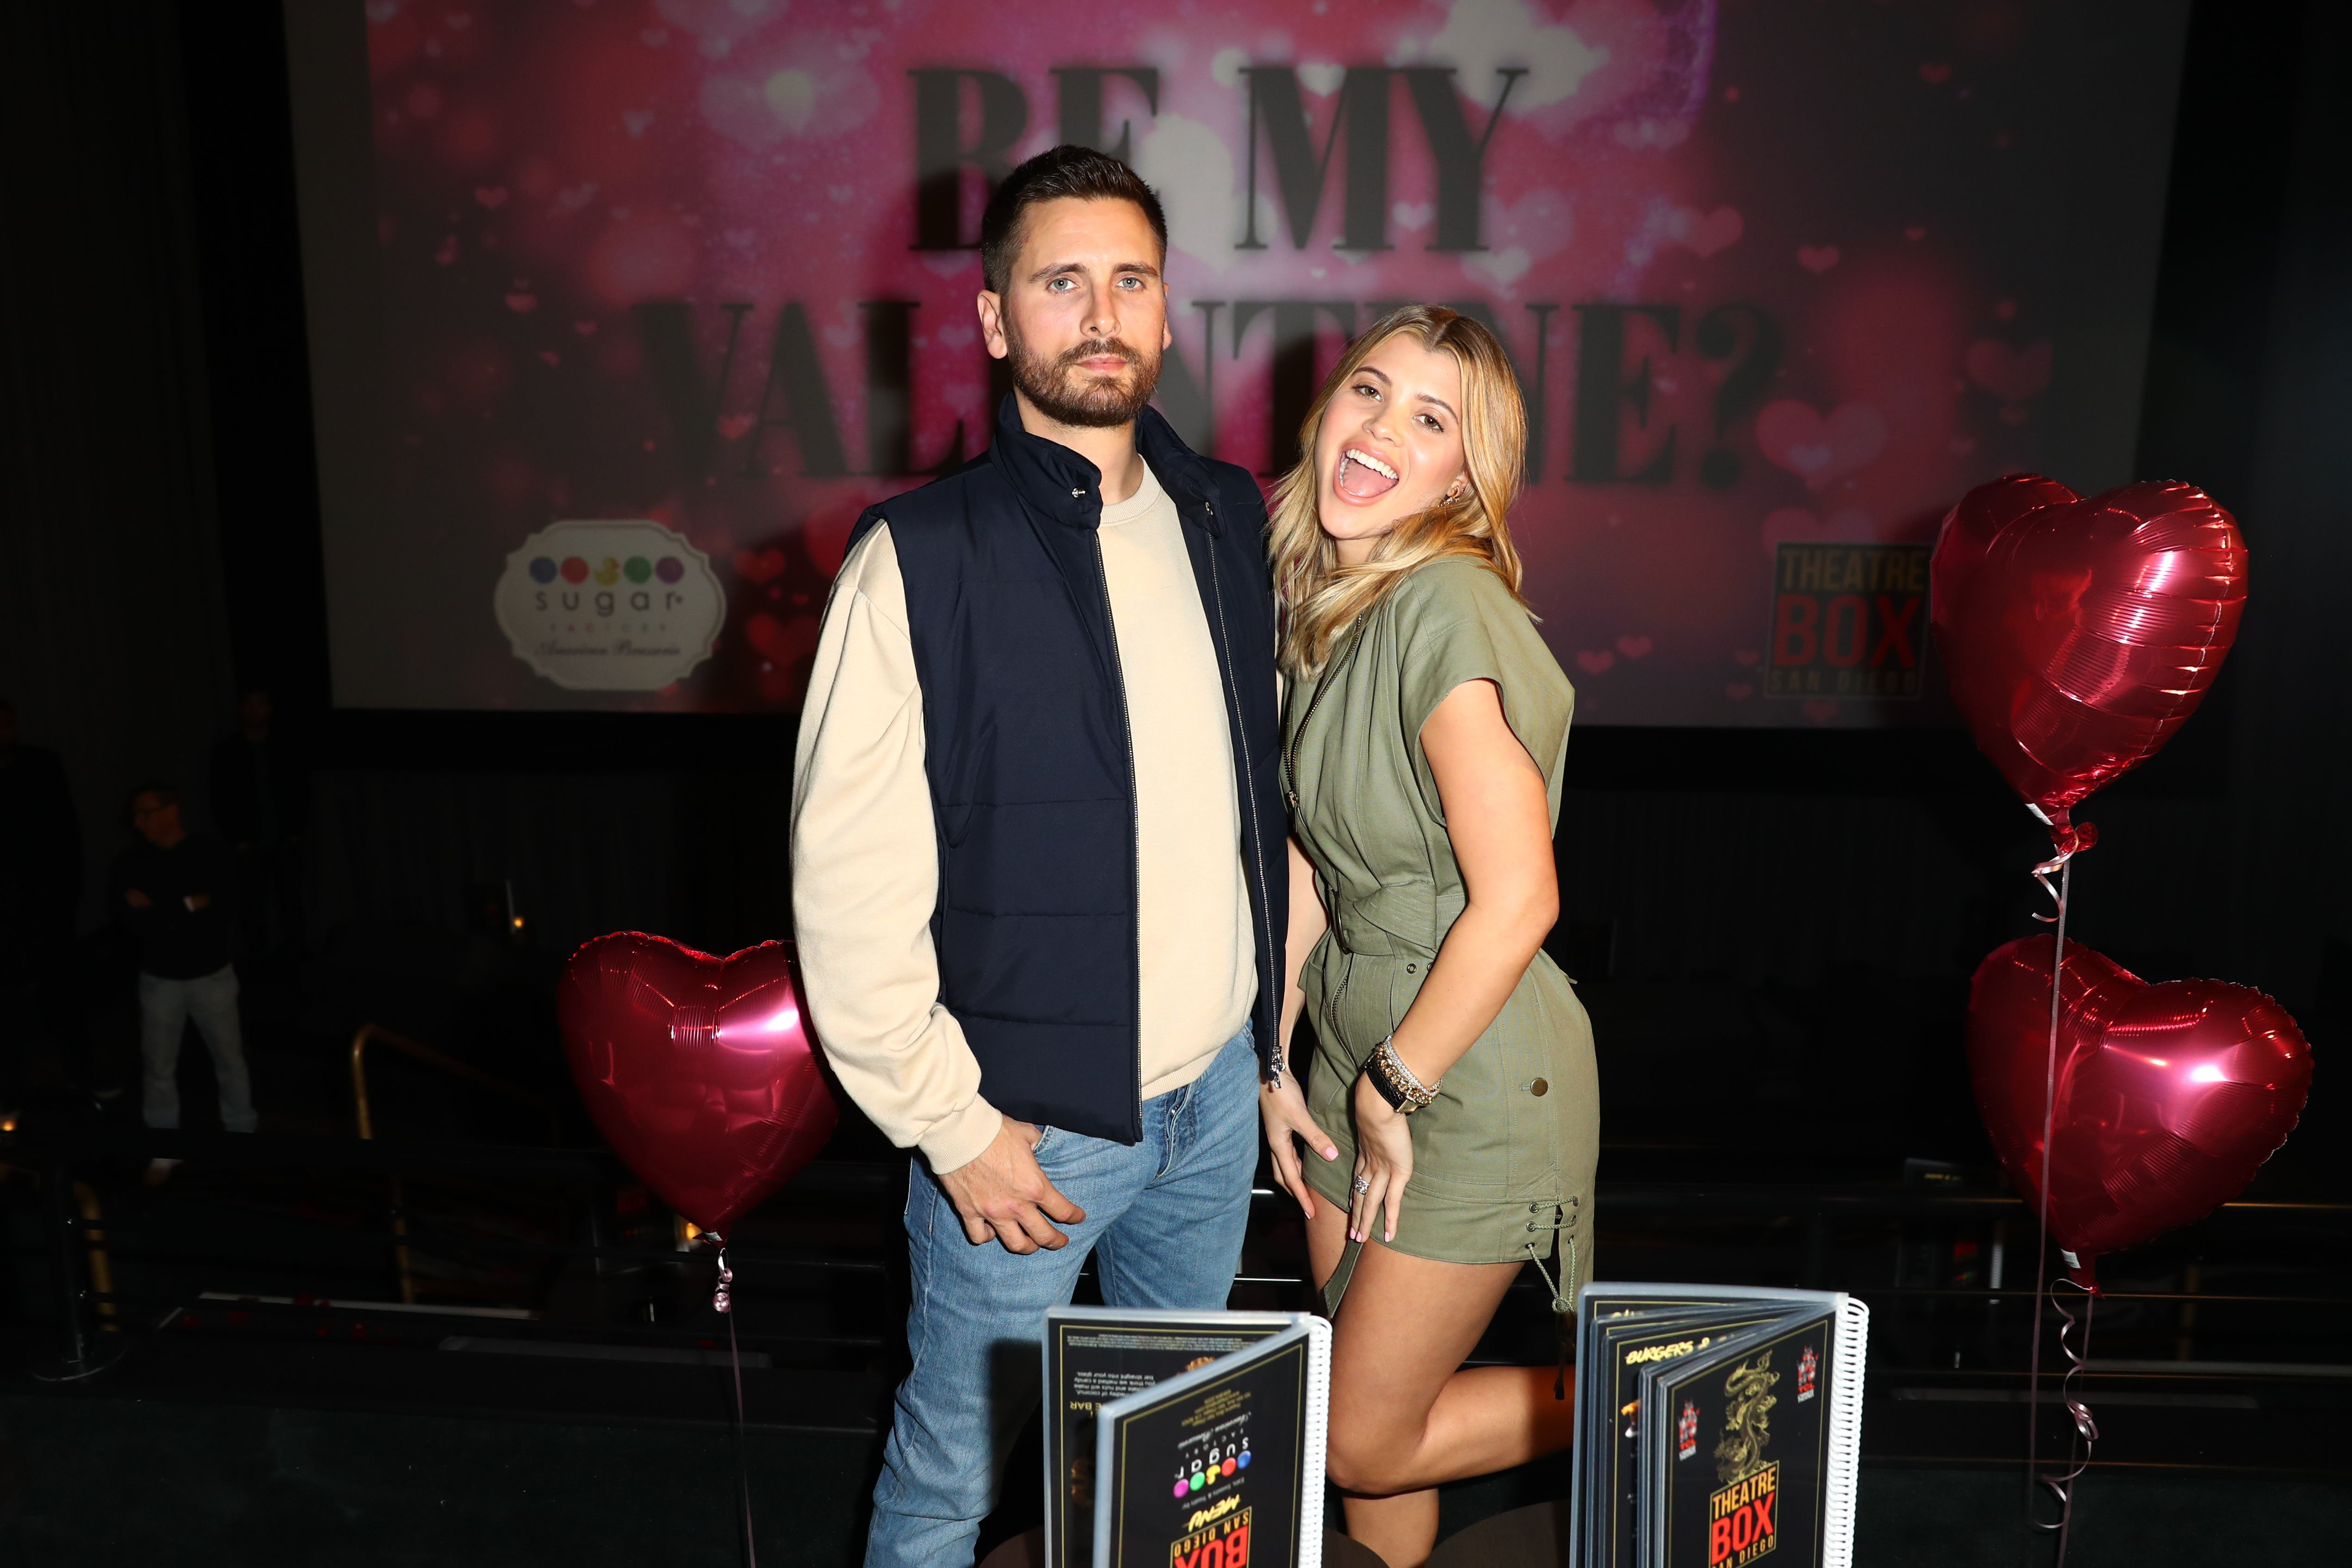 Scott Disick and Nicole Richie celebrate Valentine's Day at Theatre Box Entertainment Complex in San Diego, California on February 14, 2019 | Photo: Getty Images